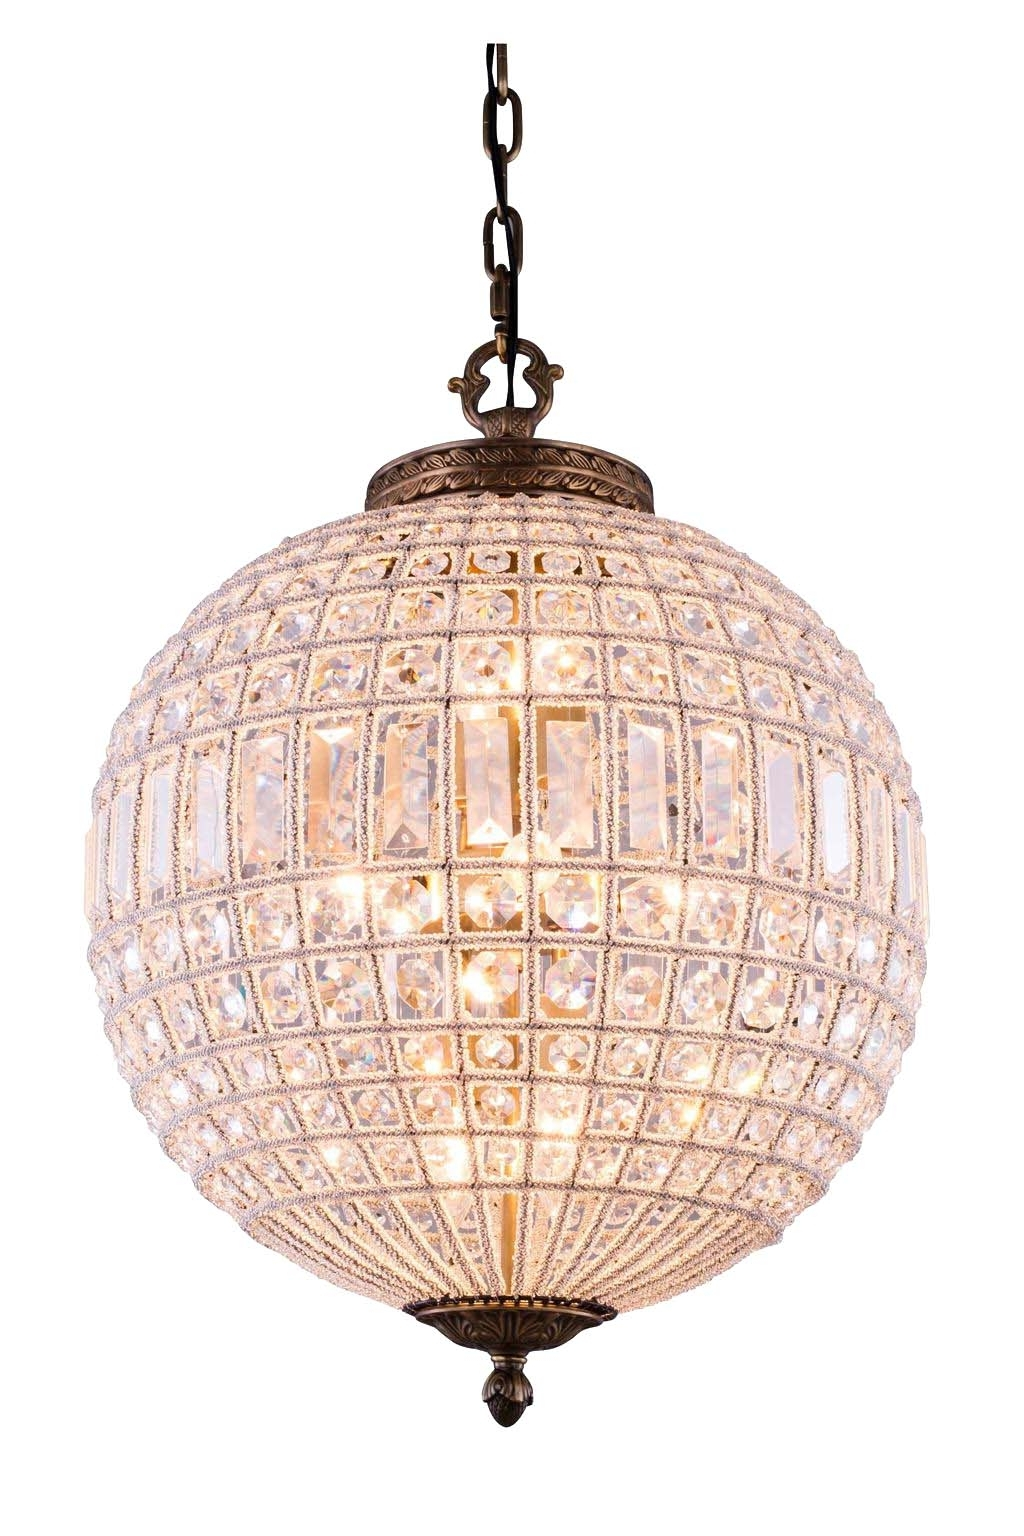 Well Known Globe Chandeliers Regarding Chandeliers Design : Magnificent Crystal Globe Chandelier Lucienne (View 10 of 20)